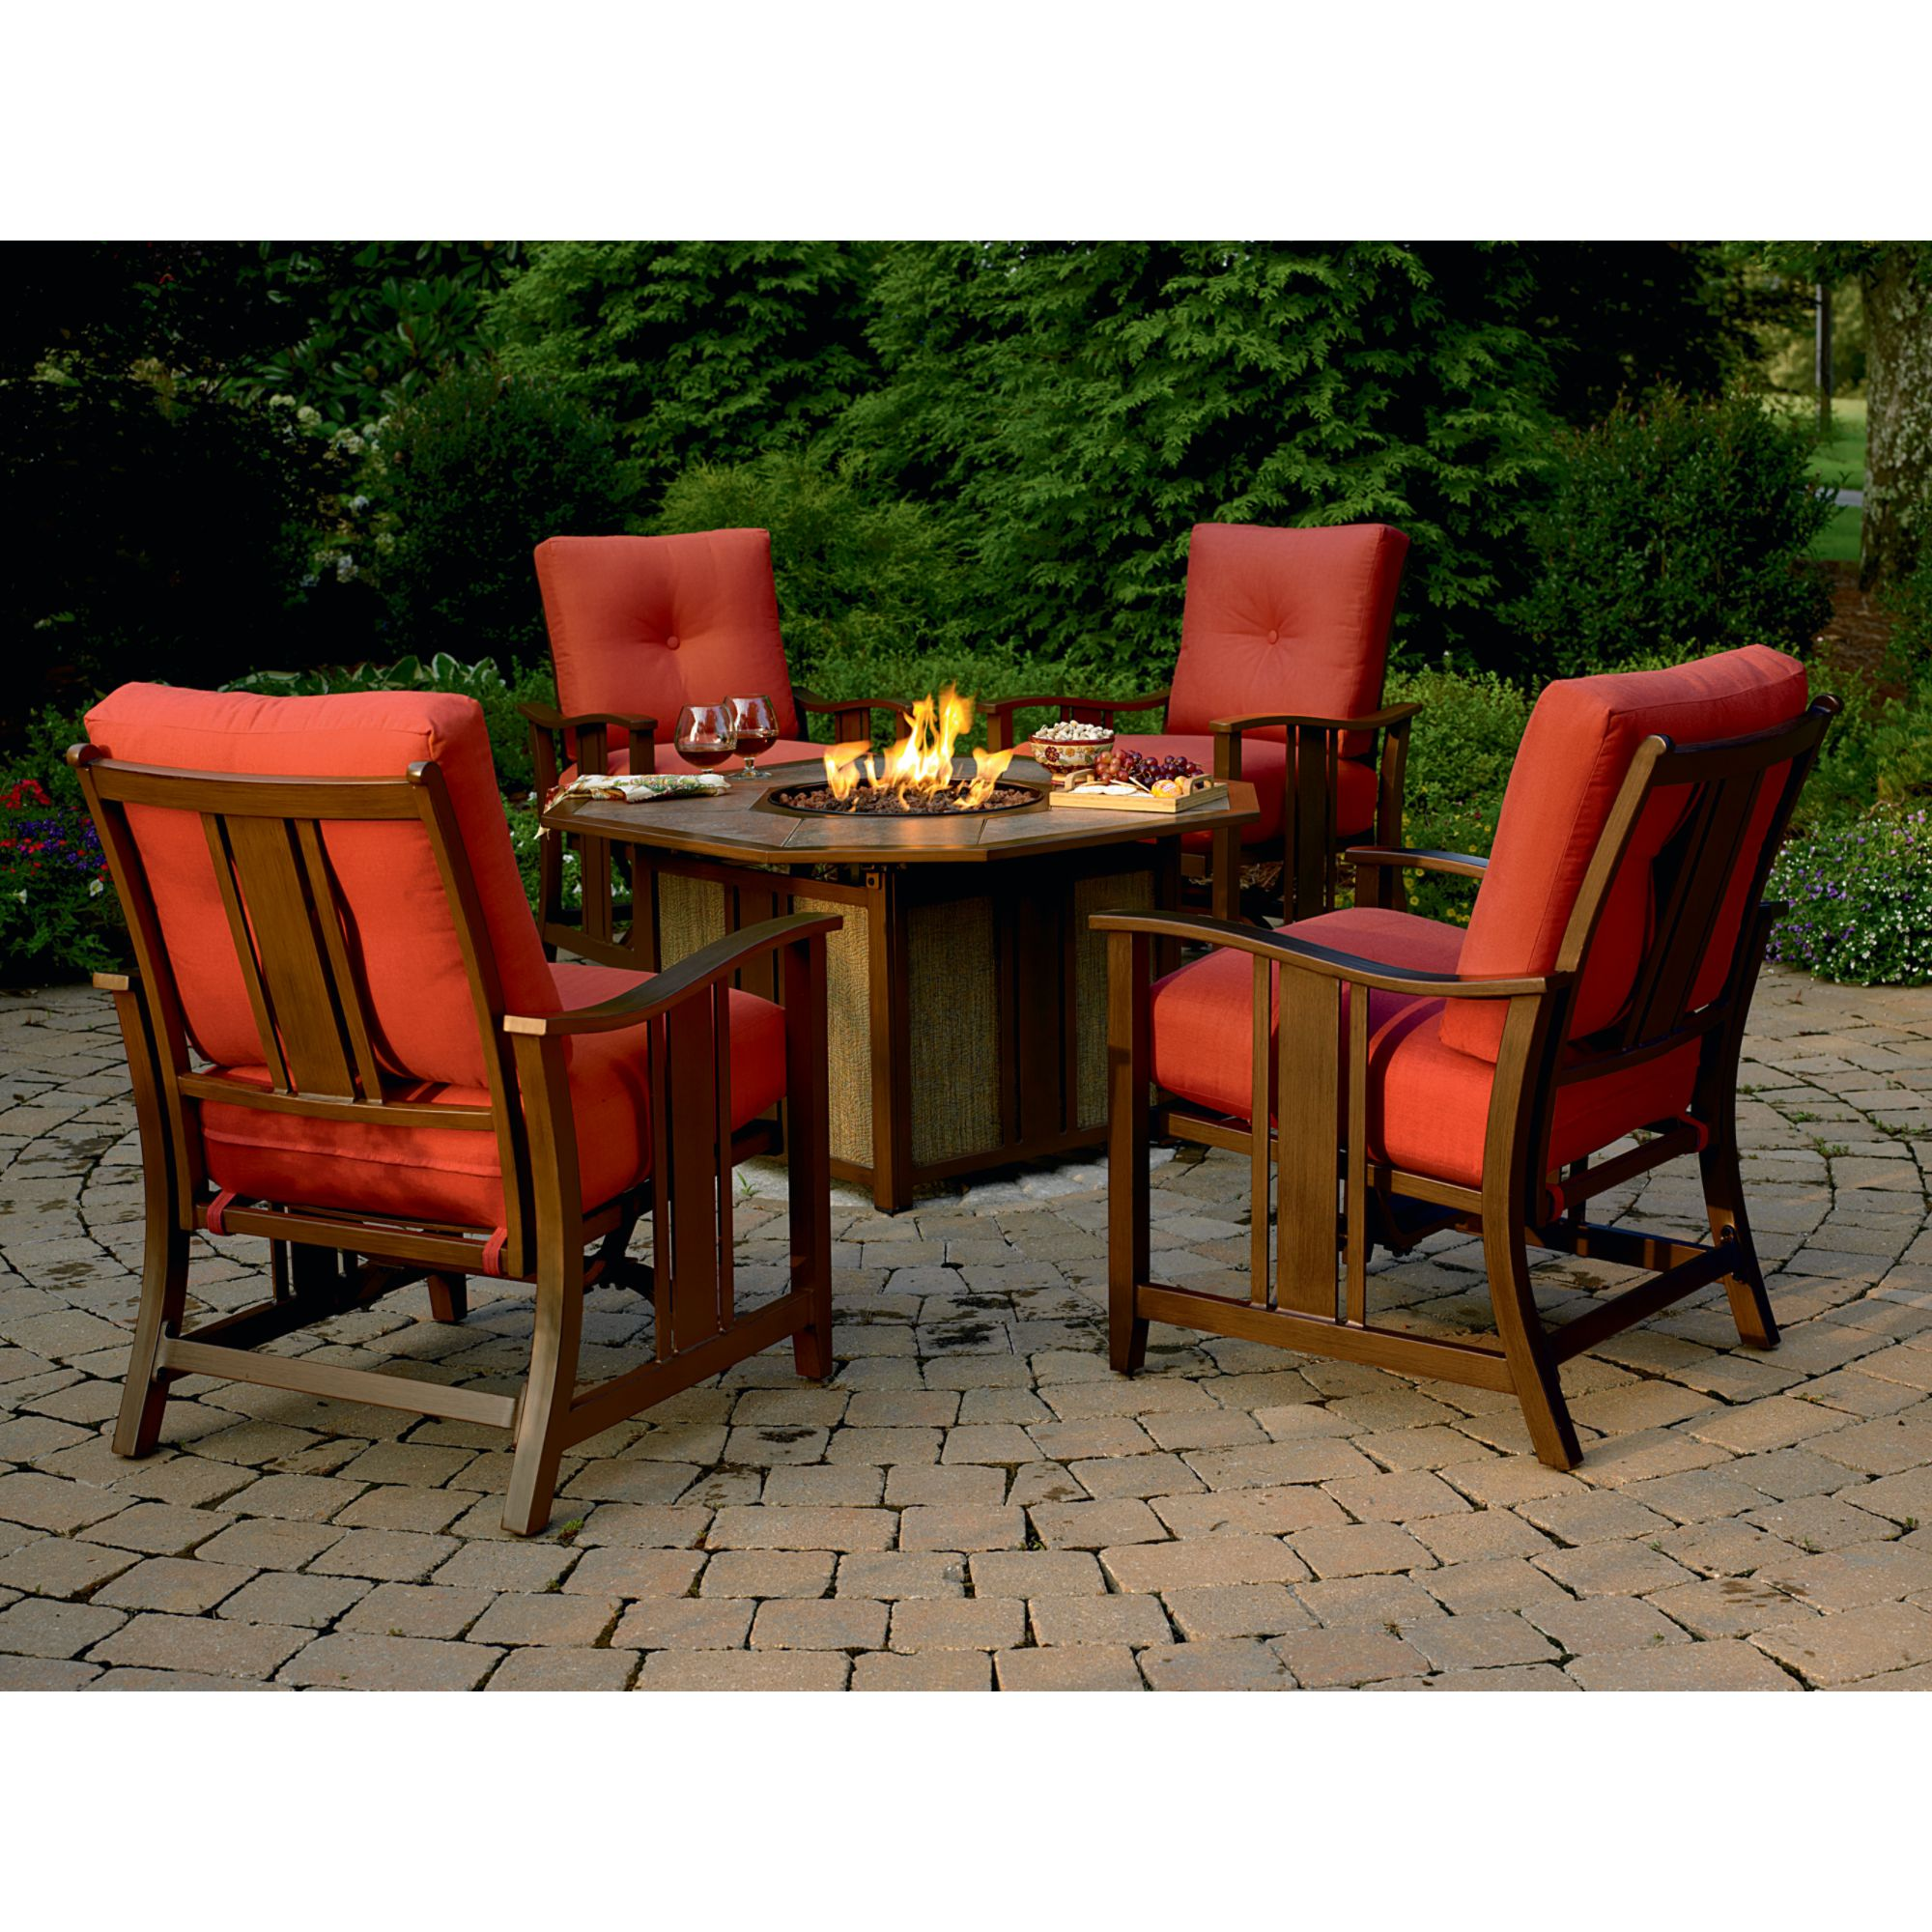 propane fire pit sets with chairs white reclining styling chair agio international wessington 5 pc firepit chat set sears